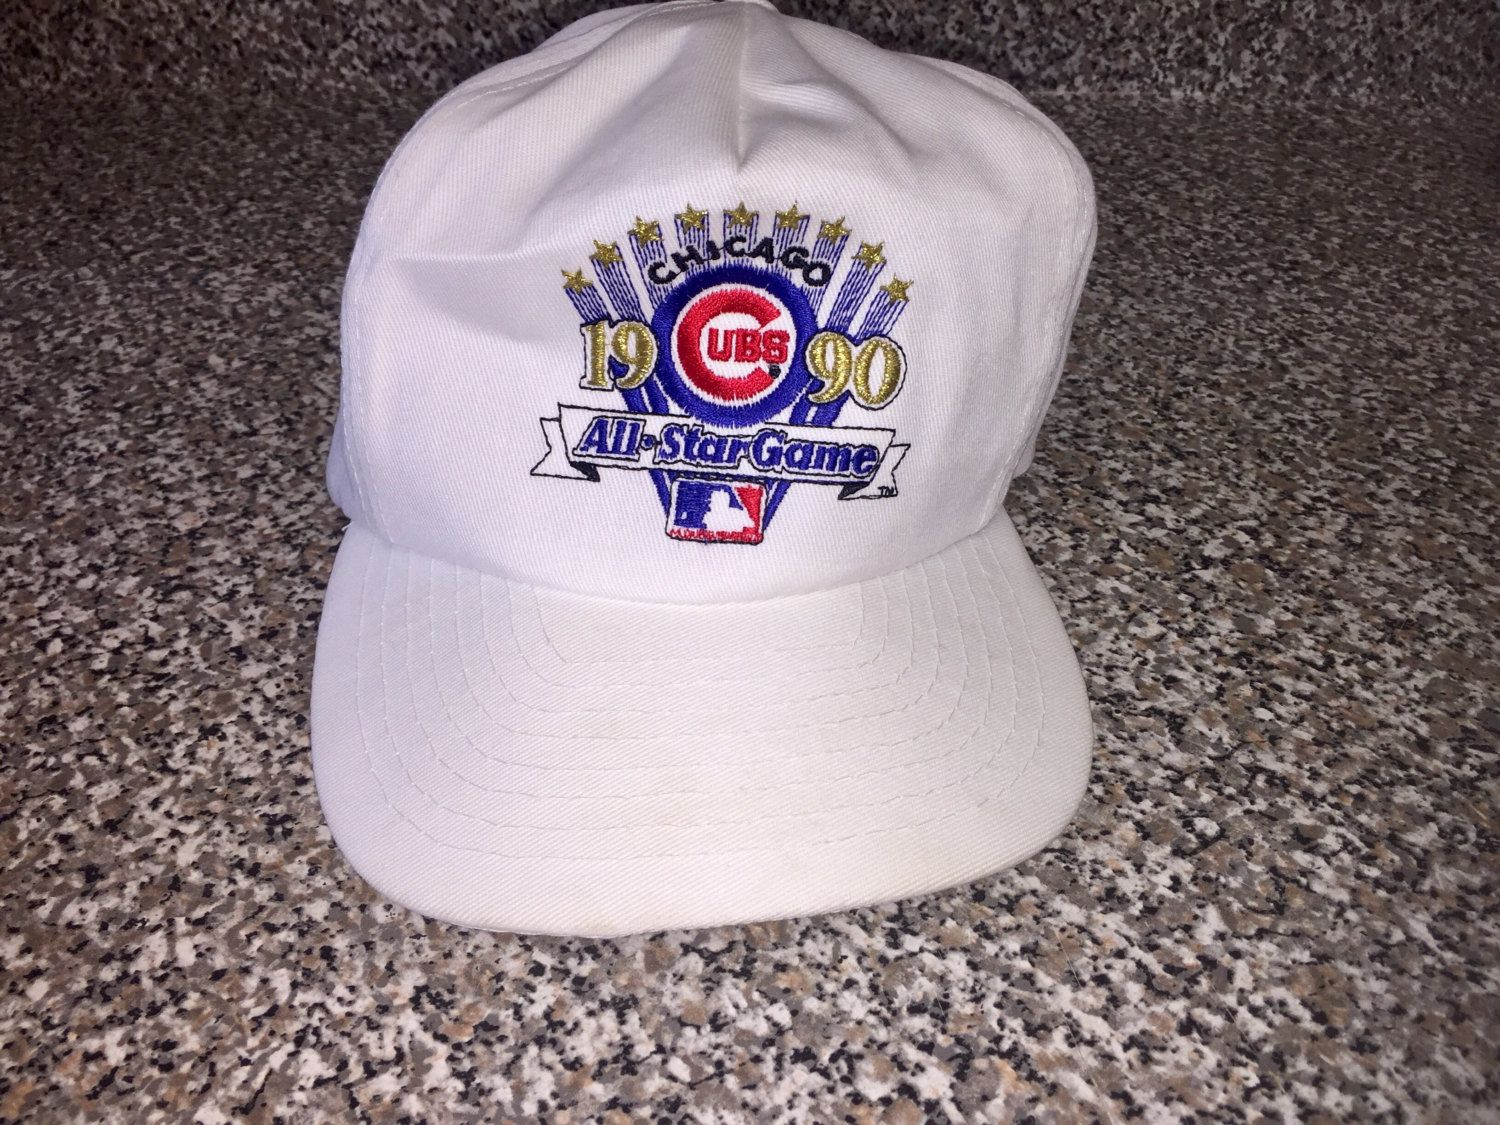 e546dc8a1 Vintage 1990 Chicago Cubs All Star Game Hat snapback starter jersey sosa  sandberg bryant rizzo reed